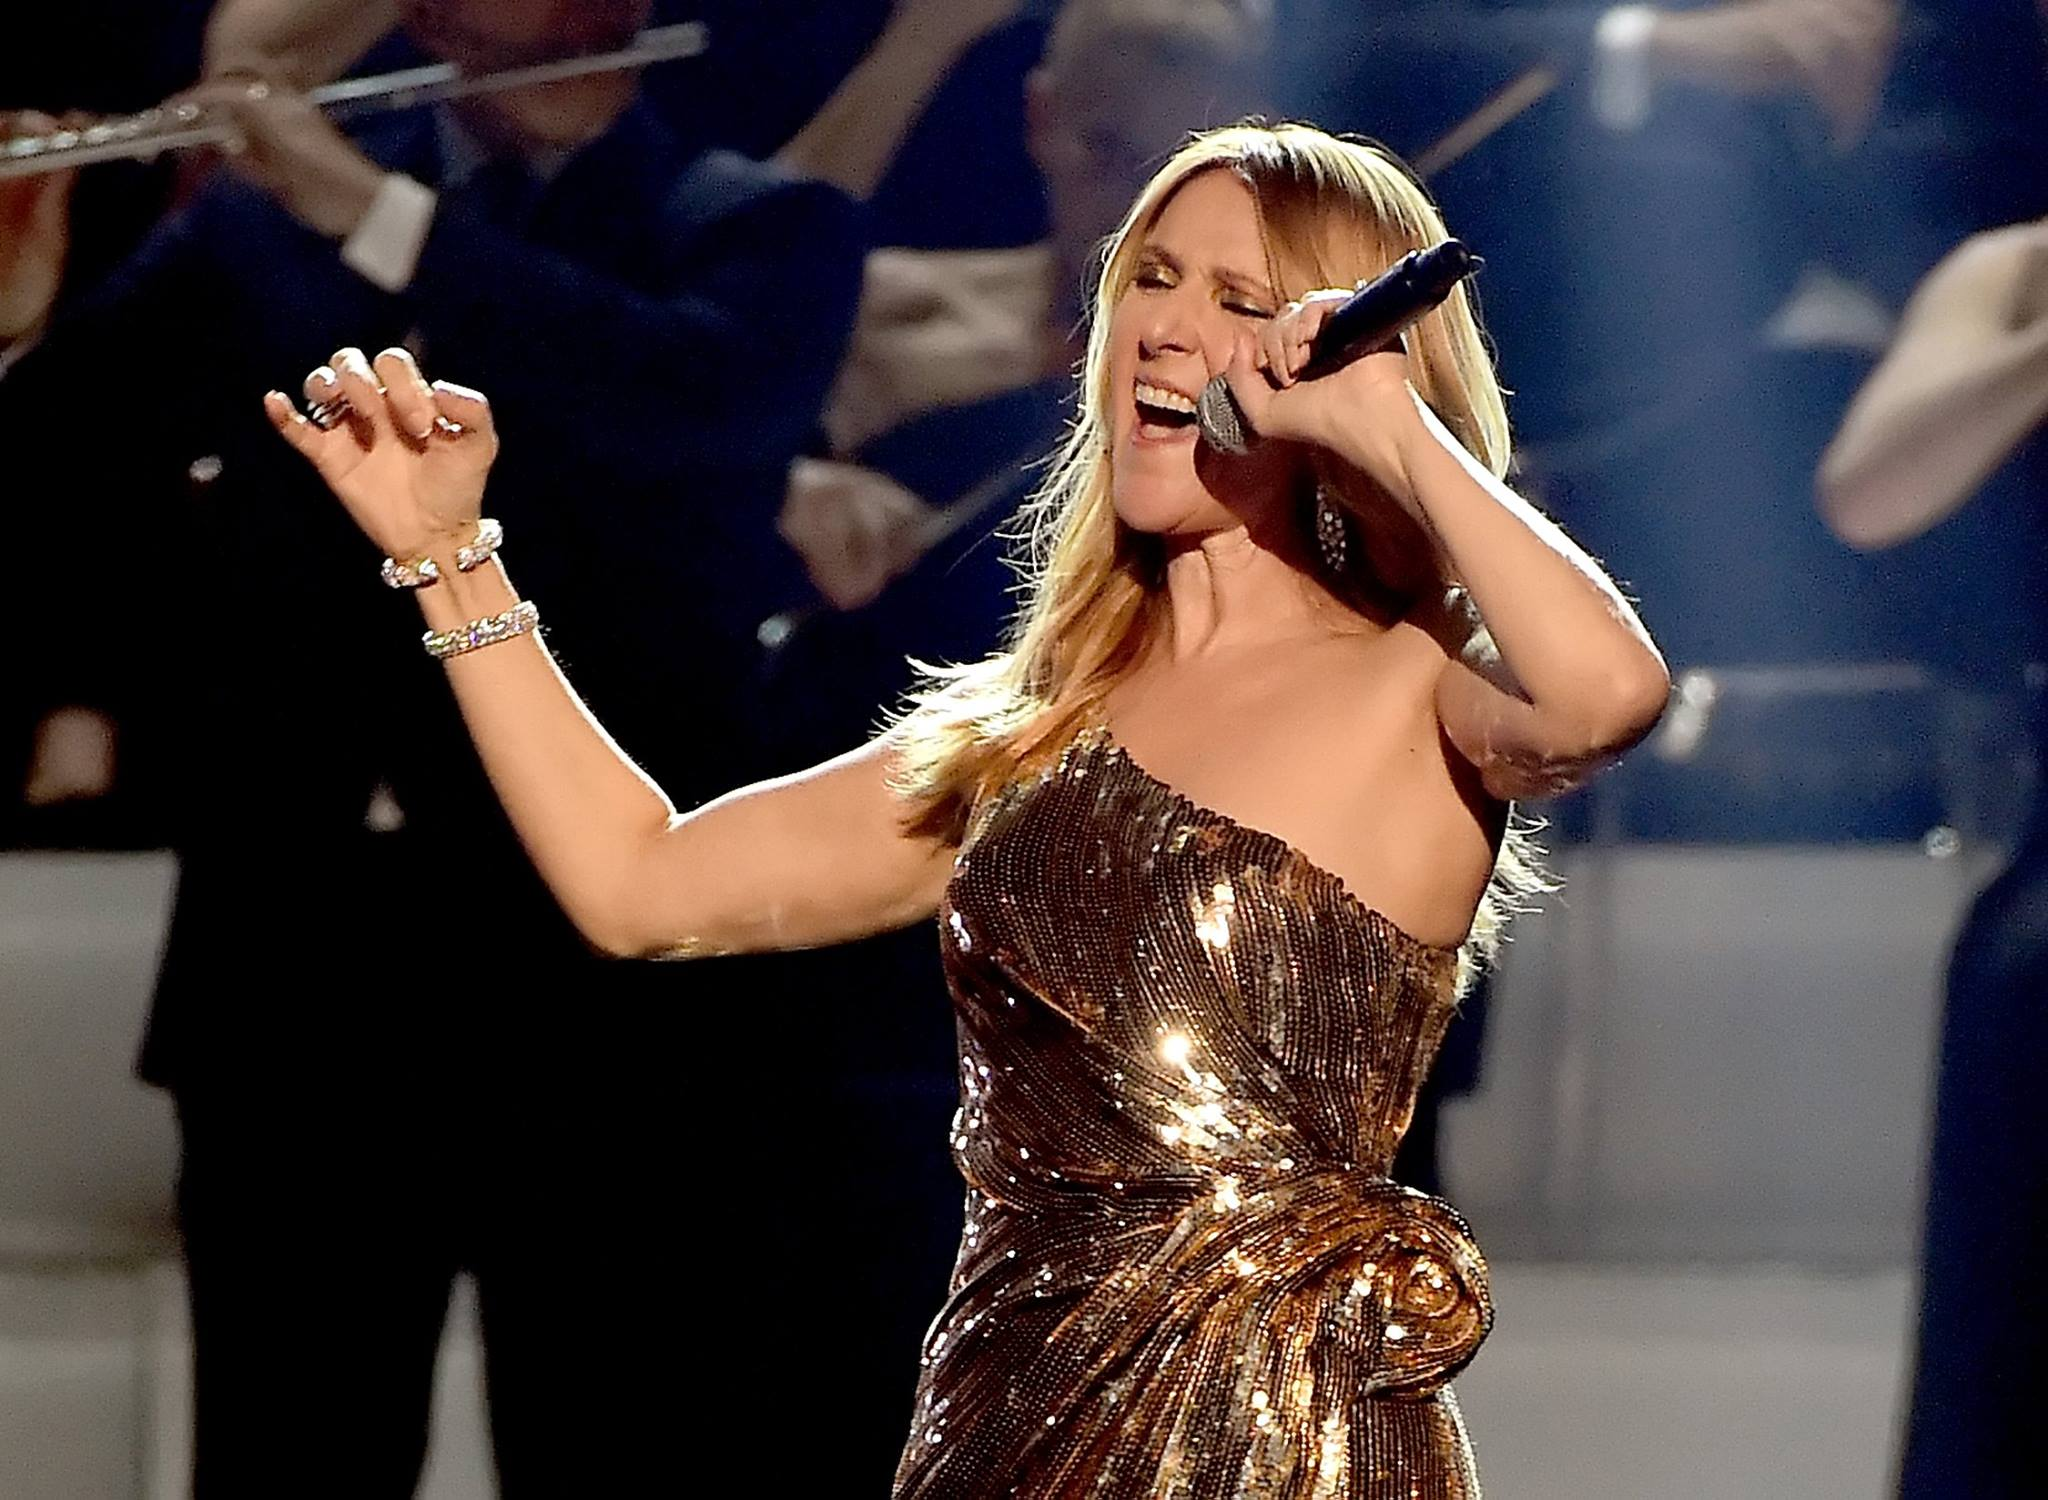 Celine Dion to perform in Singapore for first time in July